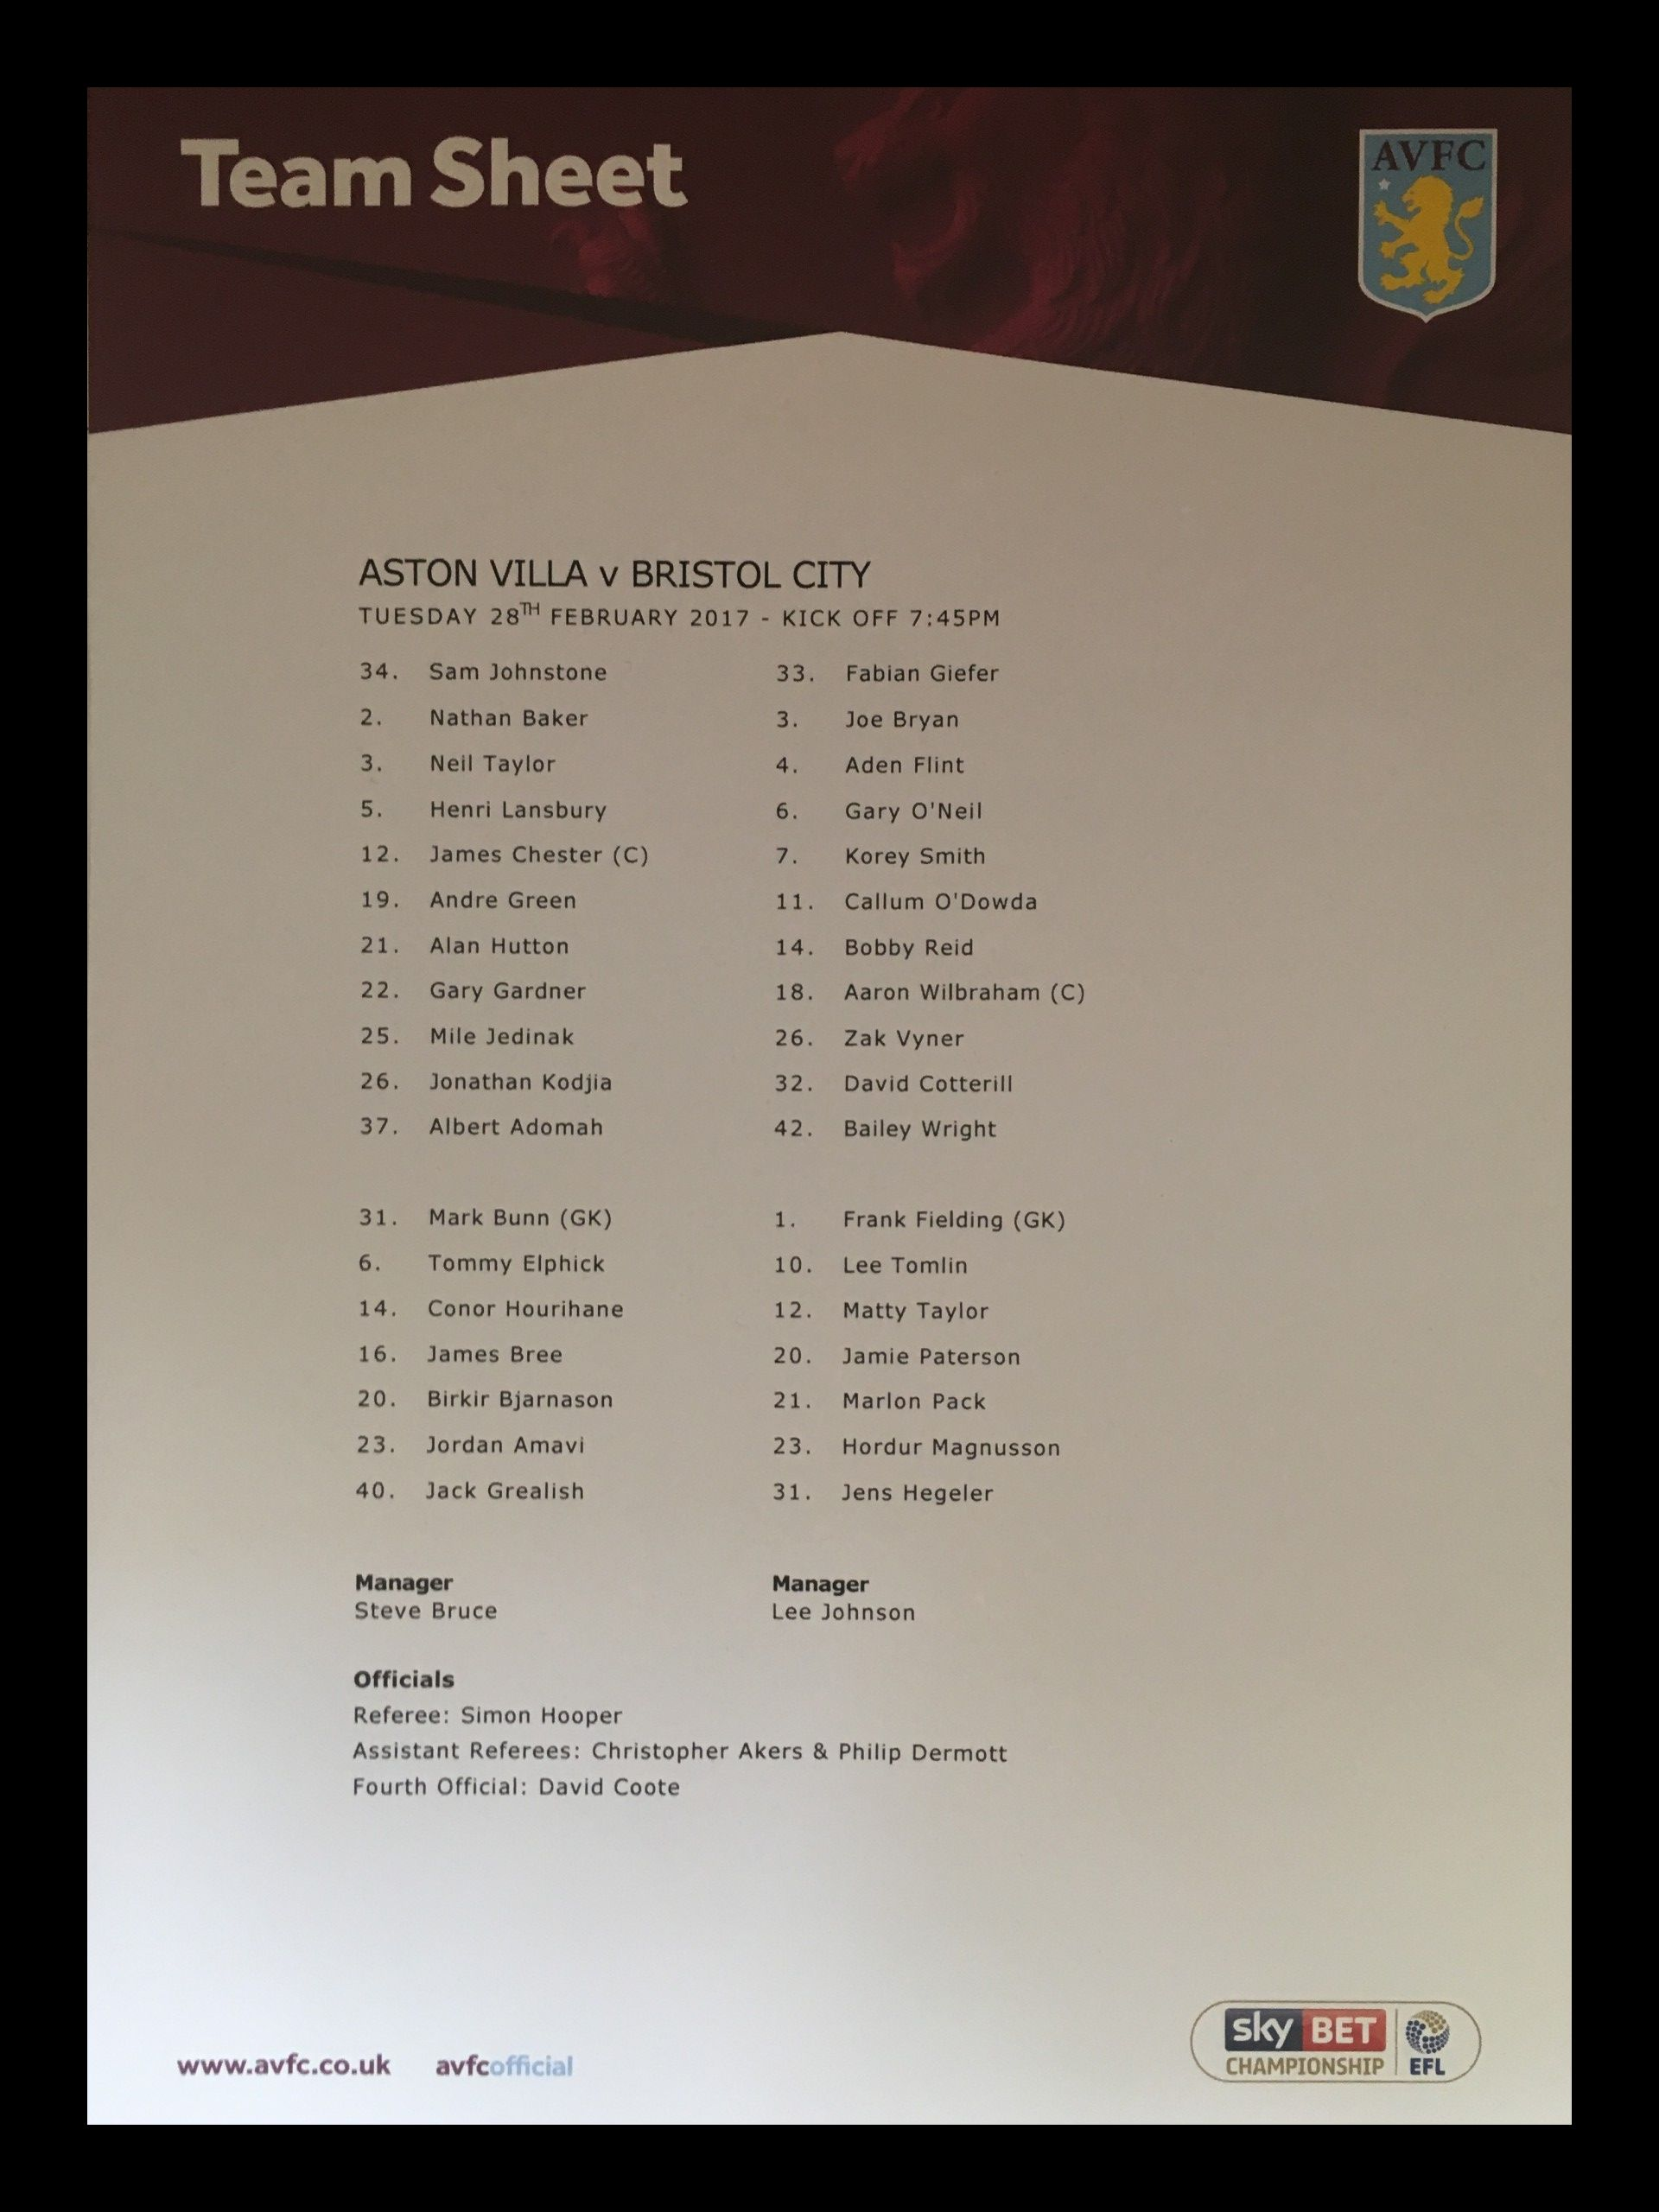 Aston Villa v Bristol City 28-02-17 Team Sheet